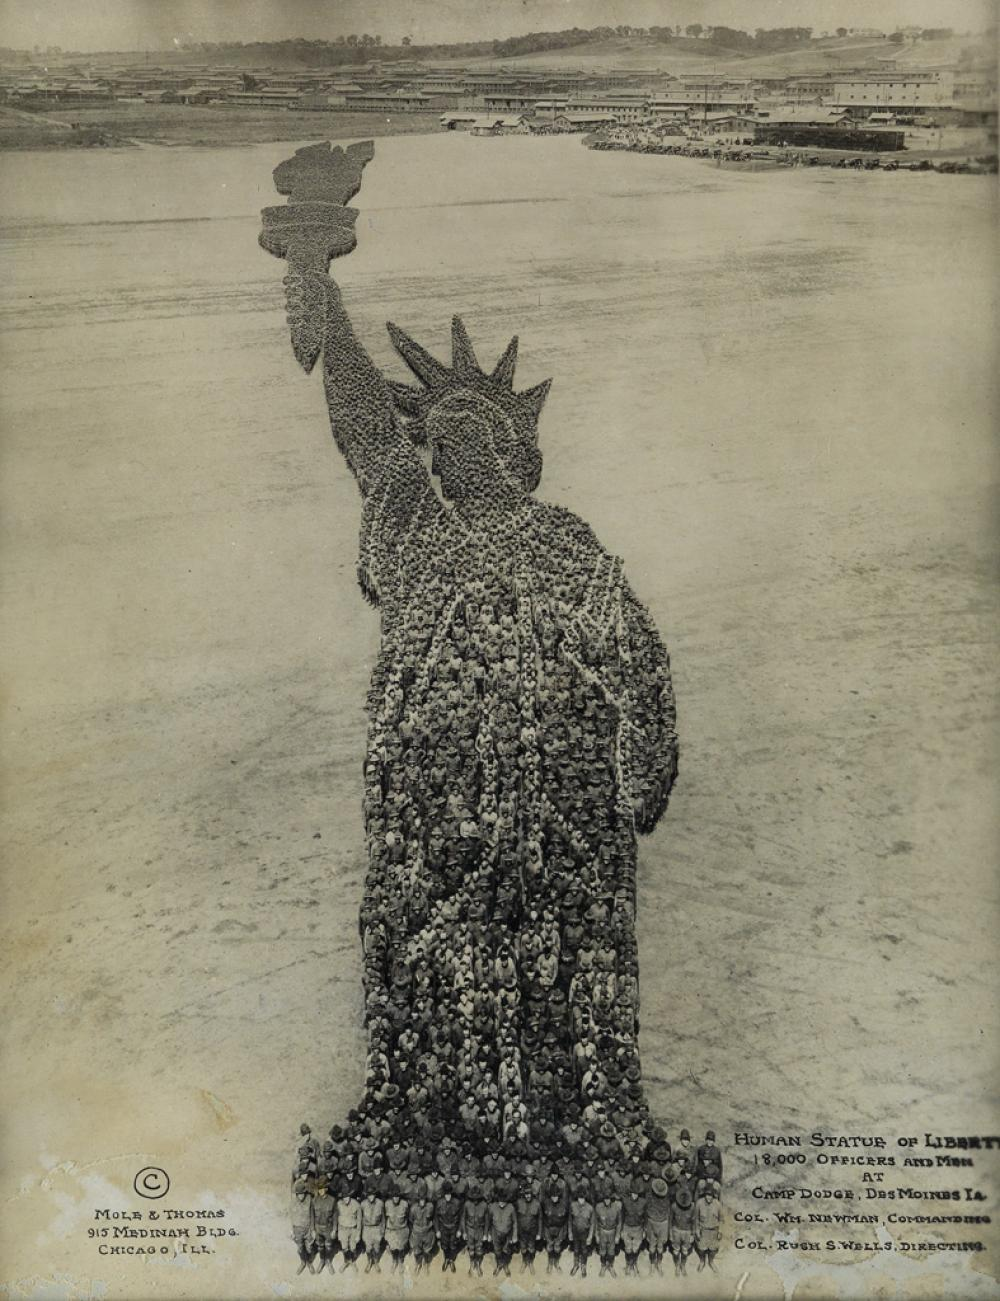 ARTHUR MOLE (1889-1983) & JOHN THOMAS (active 1918-1919) Human Statue of Liberty, 18,000 Officers and Men at Camp Dodge, Des Moines, IA